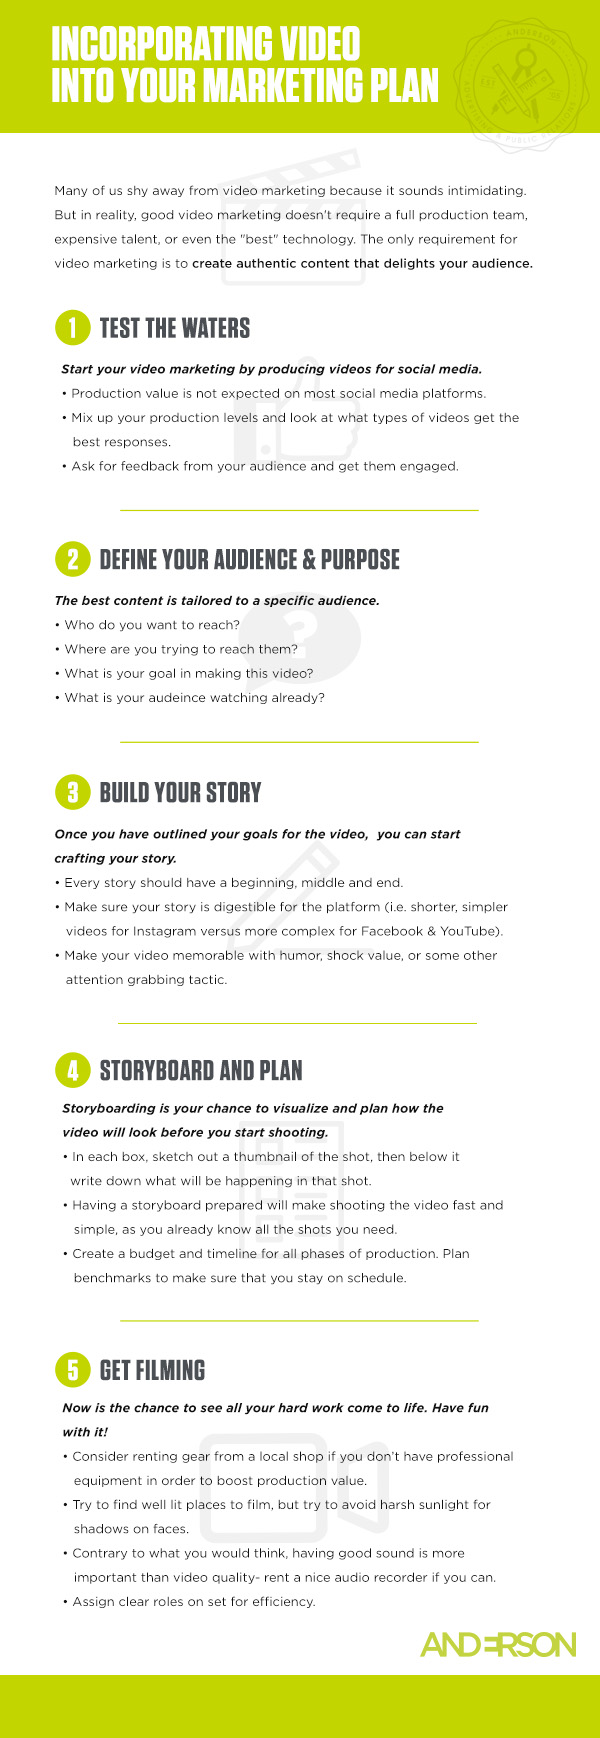 How to Incorporate Video Marketing Into Marketing Plan - Infographic